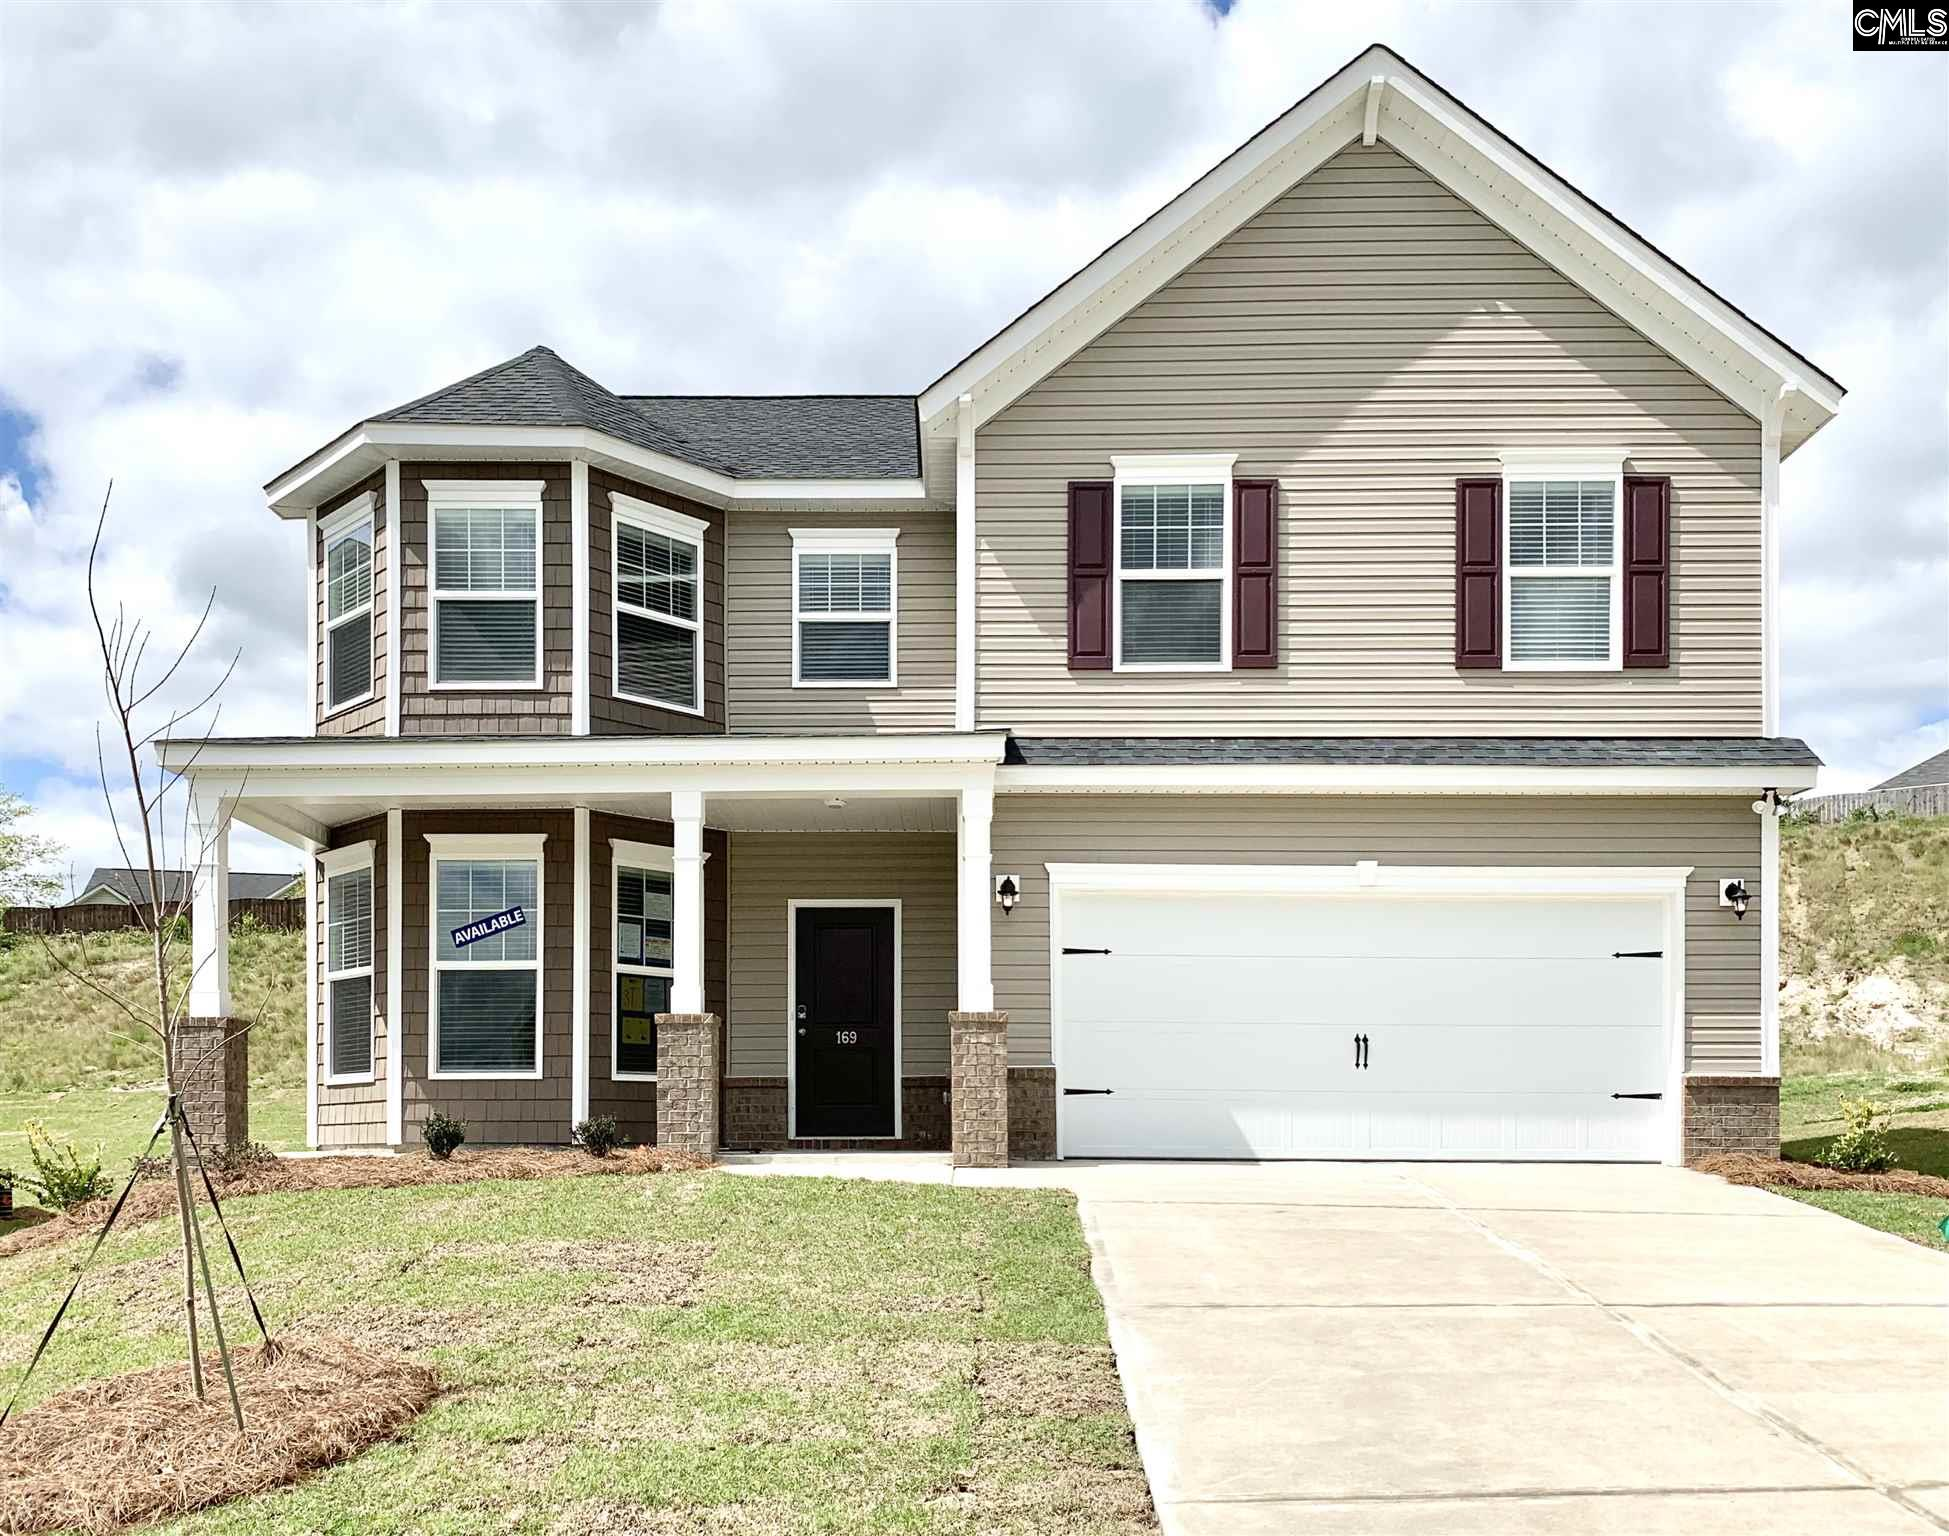 169 Sunny View Lexington, SC 29073